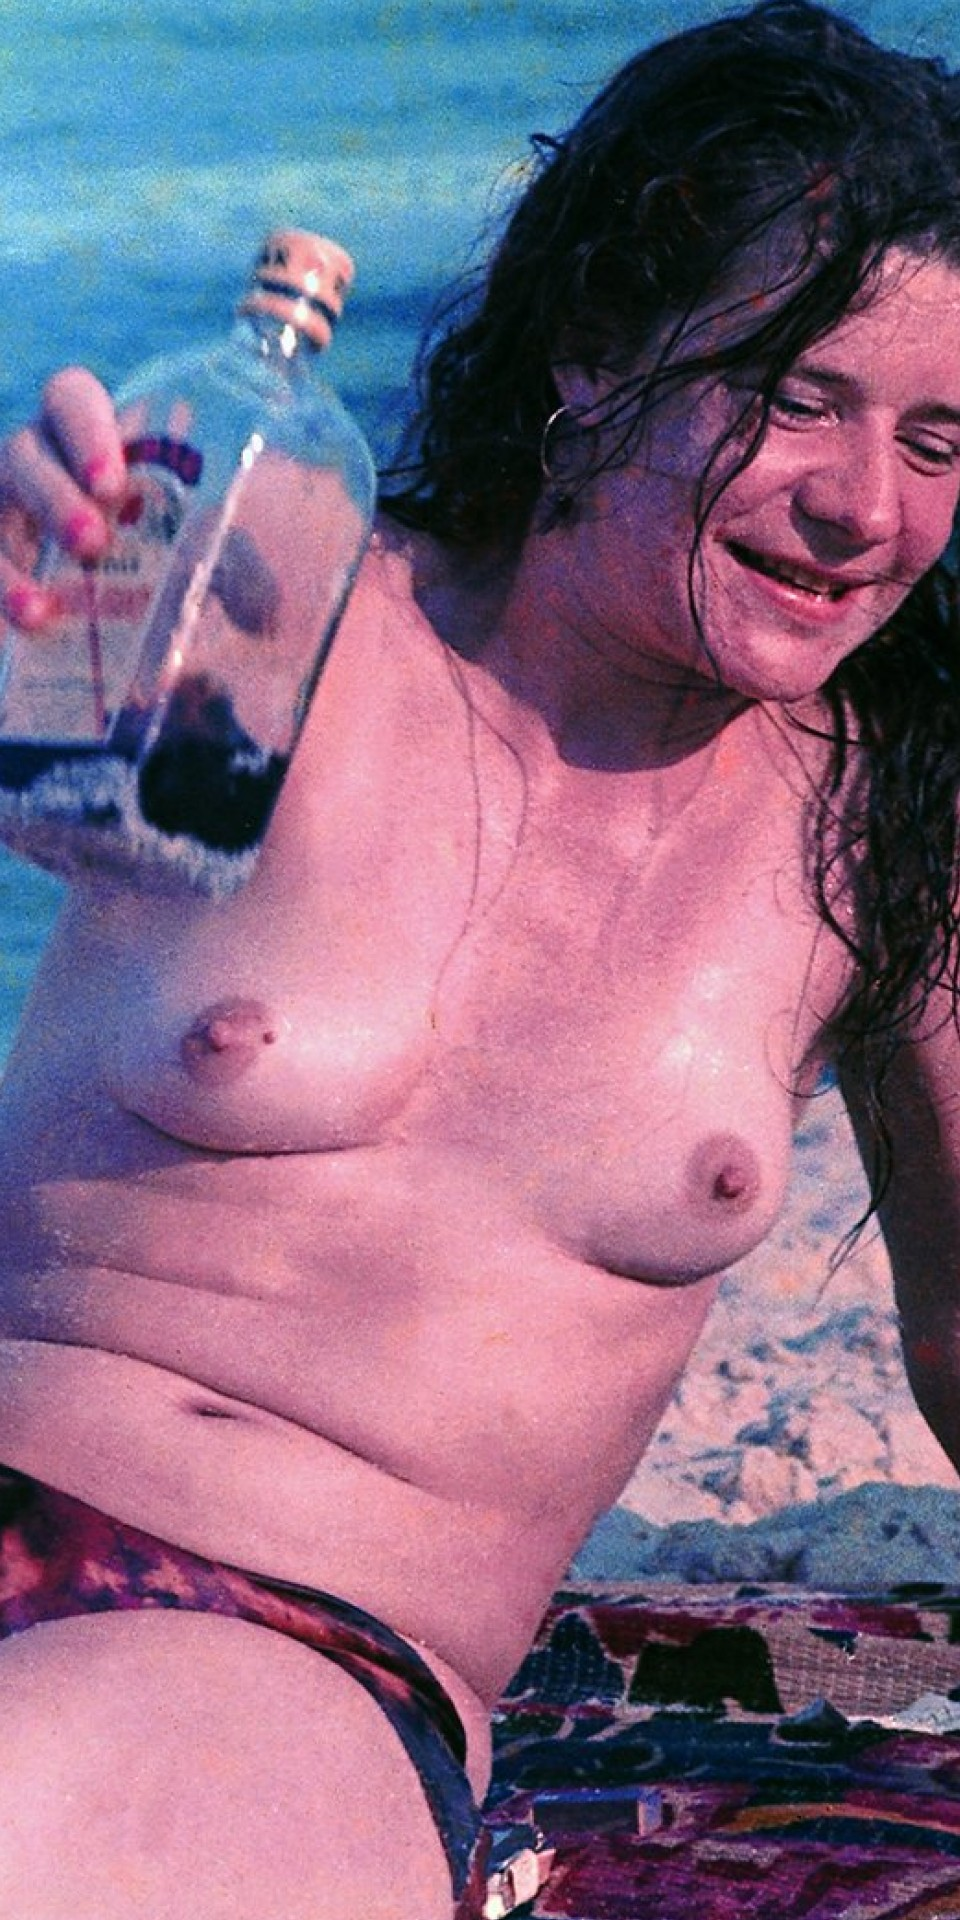 Reserve Janis joplin nude pictures consider, what